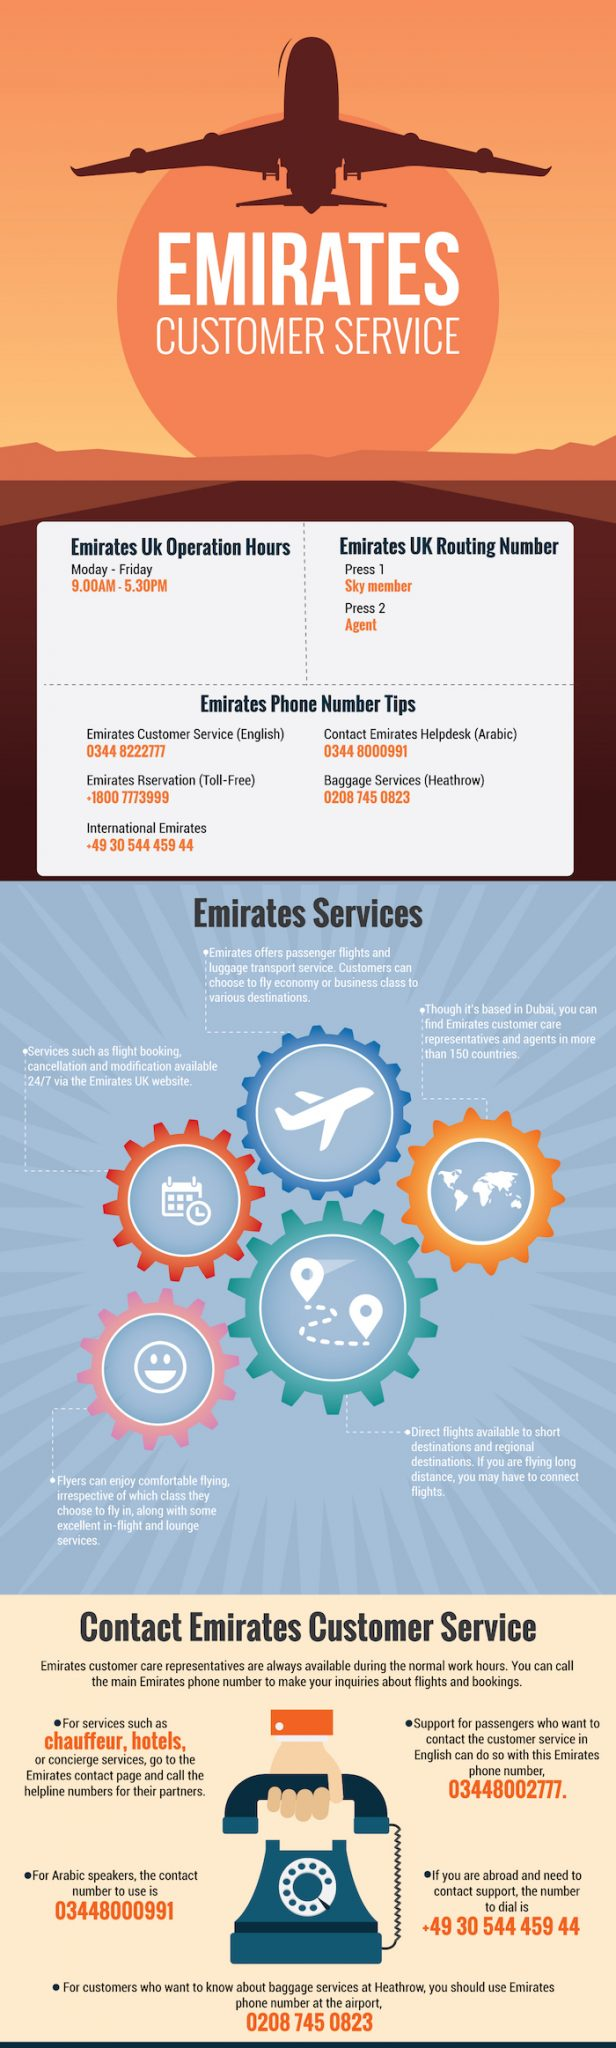 Emirates Customer Care Services